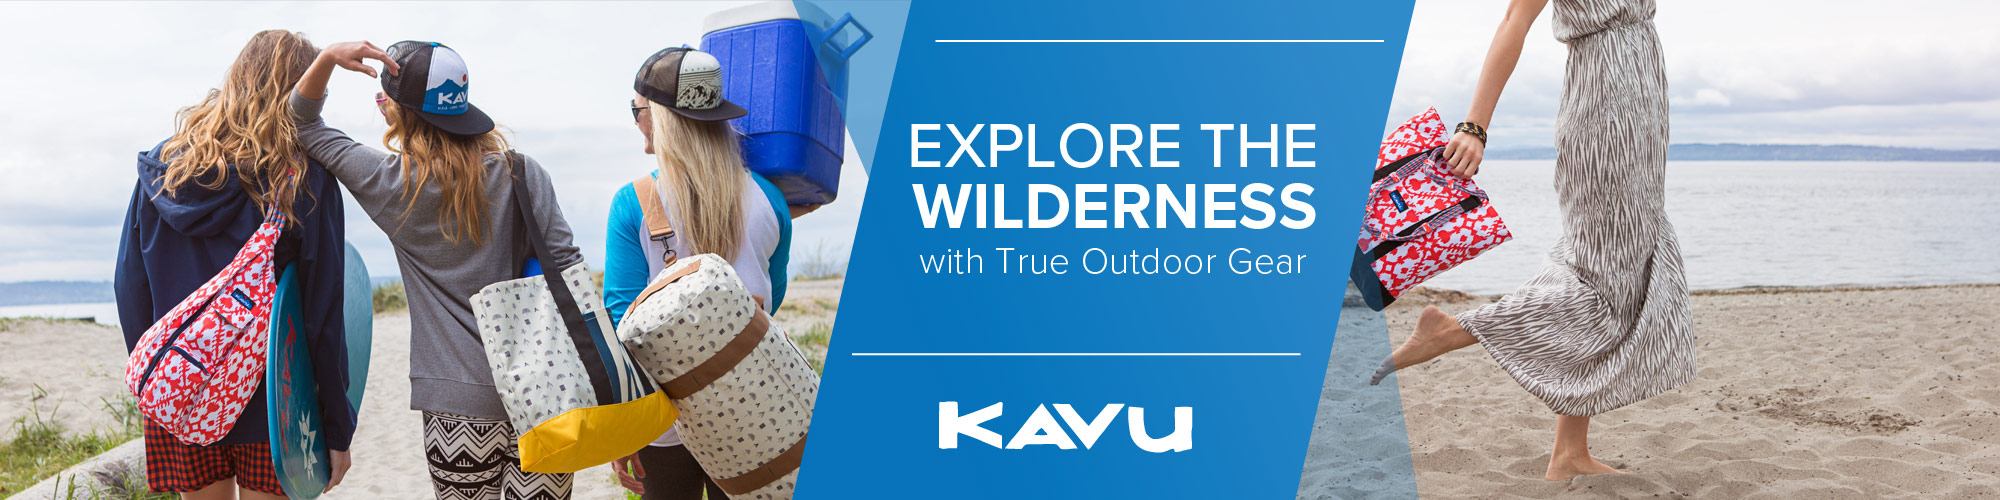 Shop Kavu bags and clothing